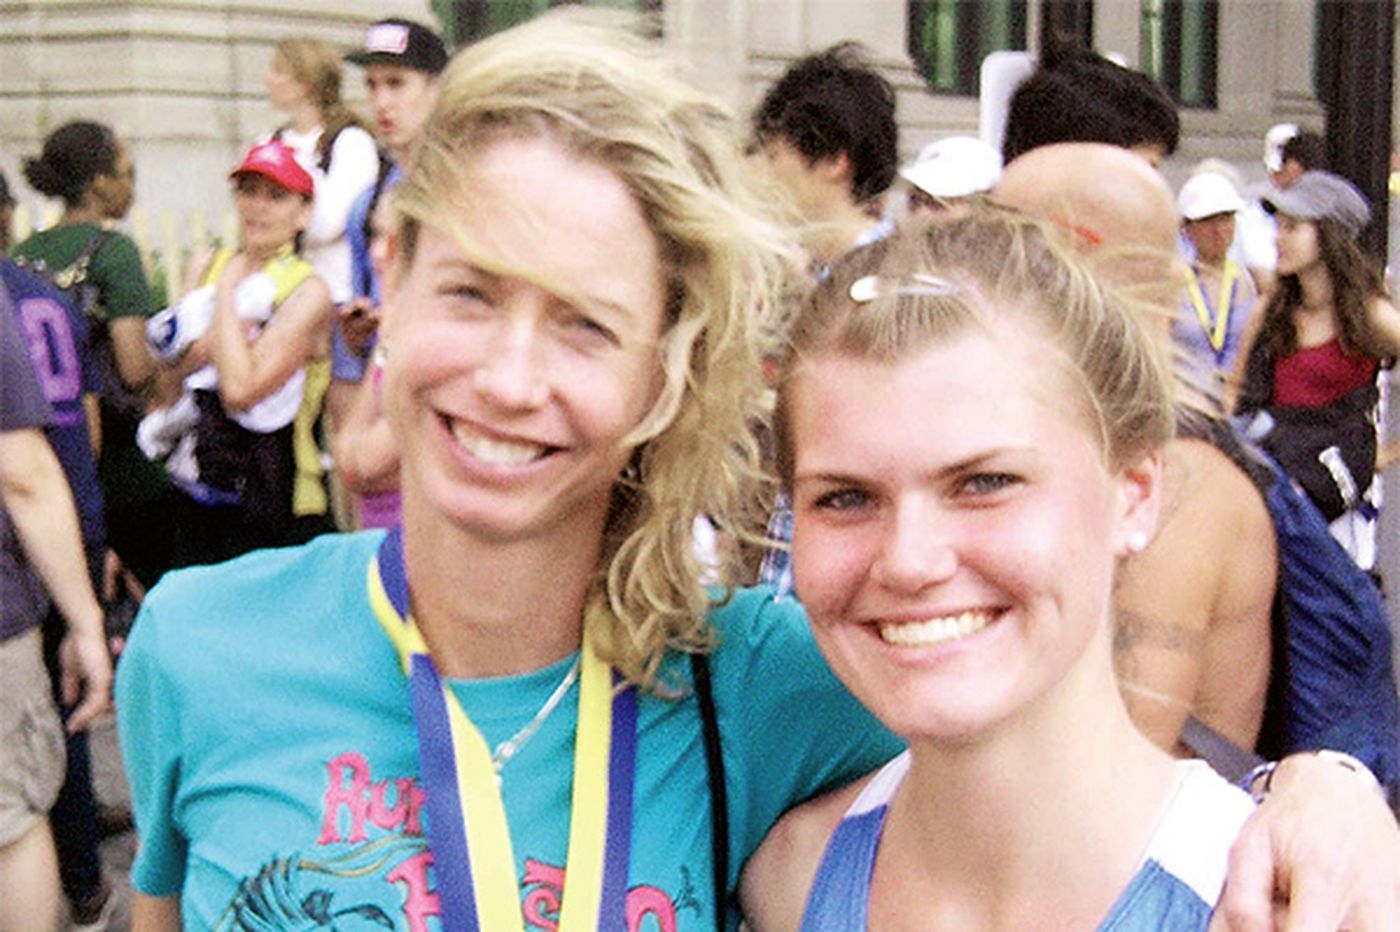 Marathoners returning to Boston to honor bombing victims